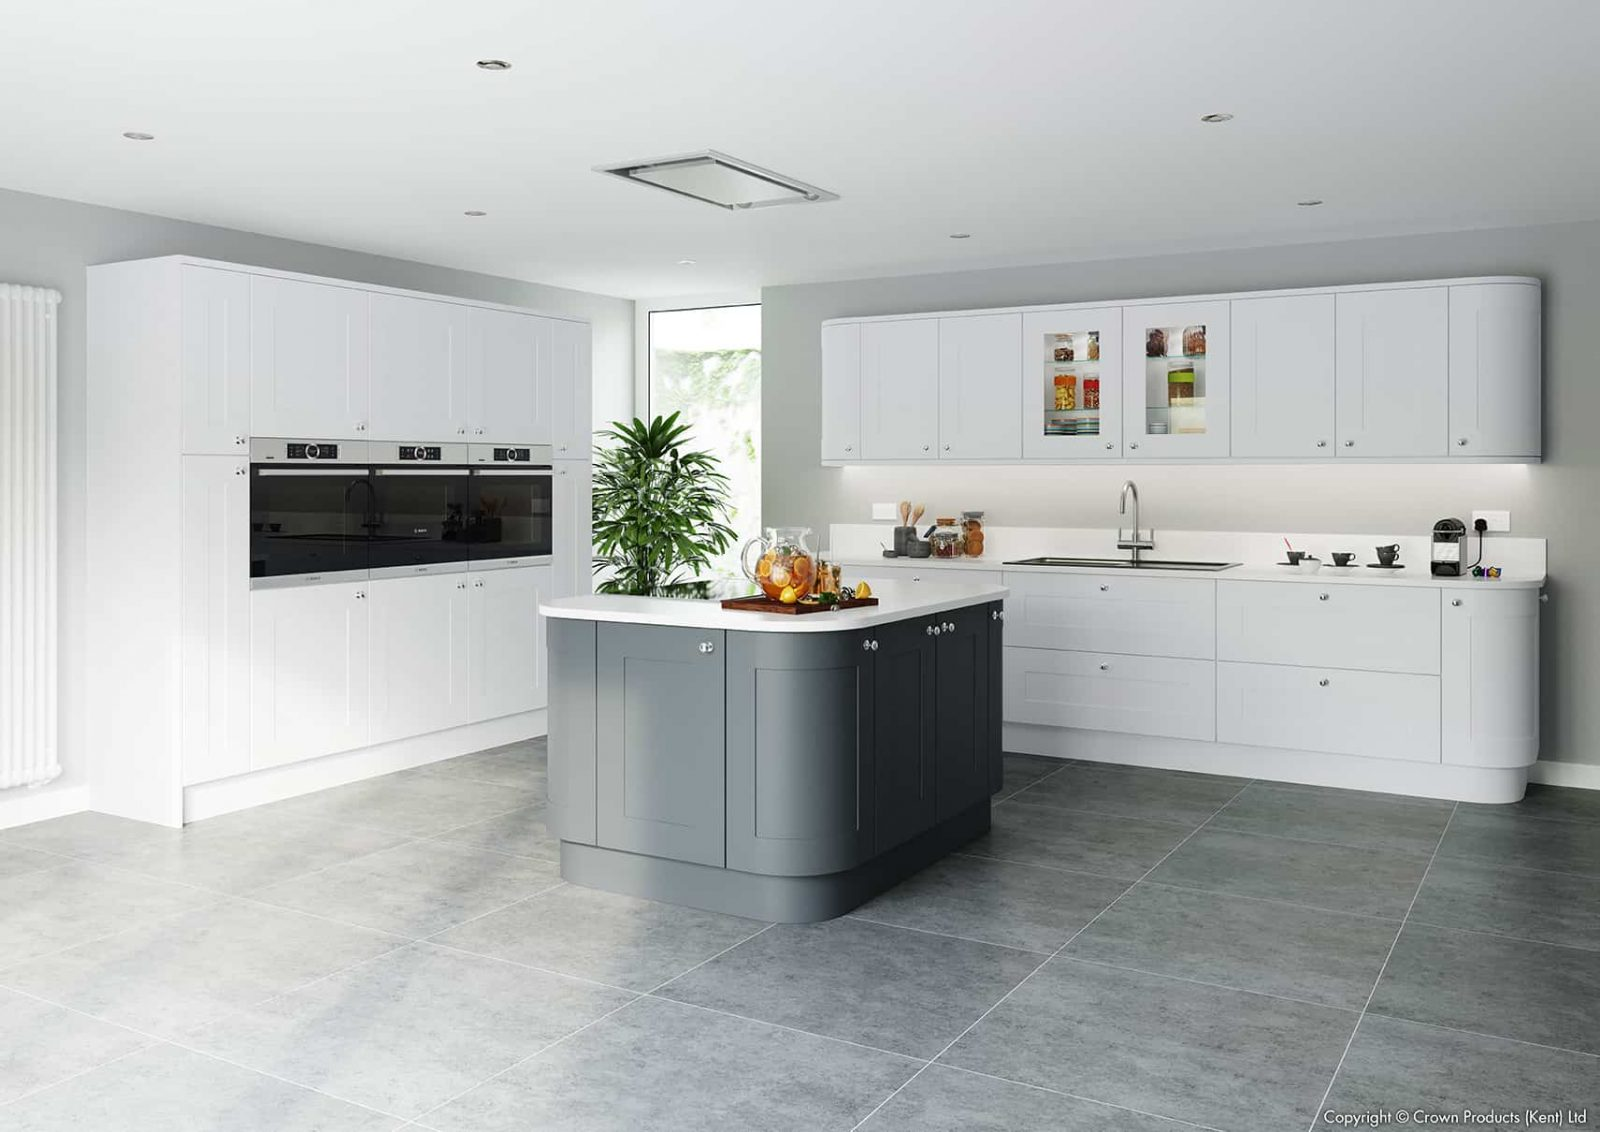 L shape open plan kitchen with a small island shown in Avio white and graphite